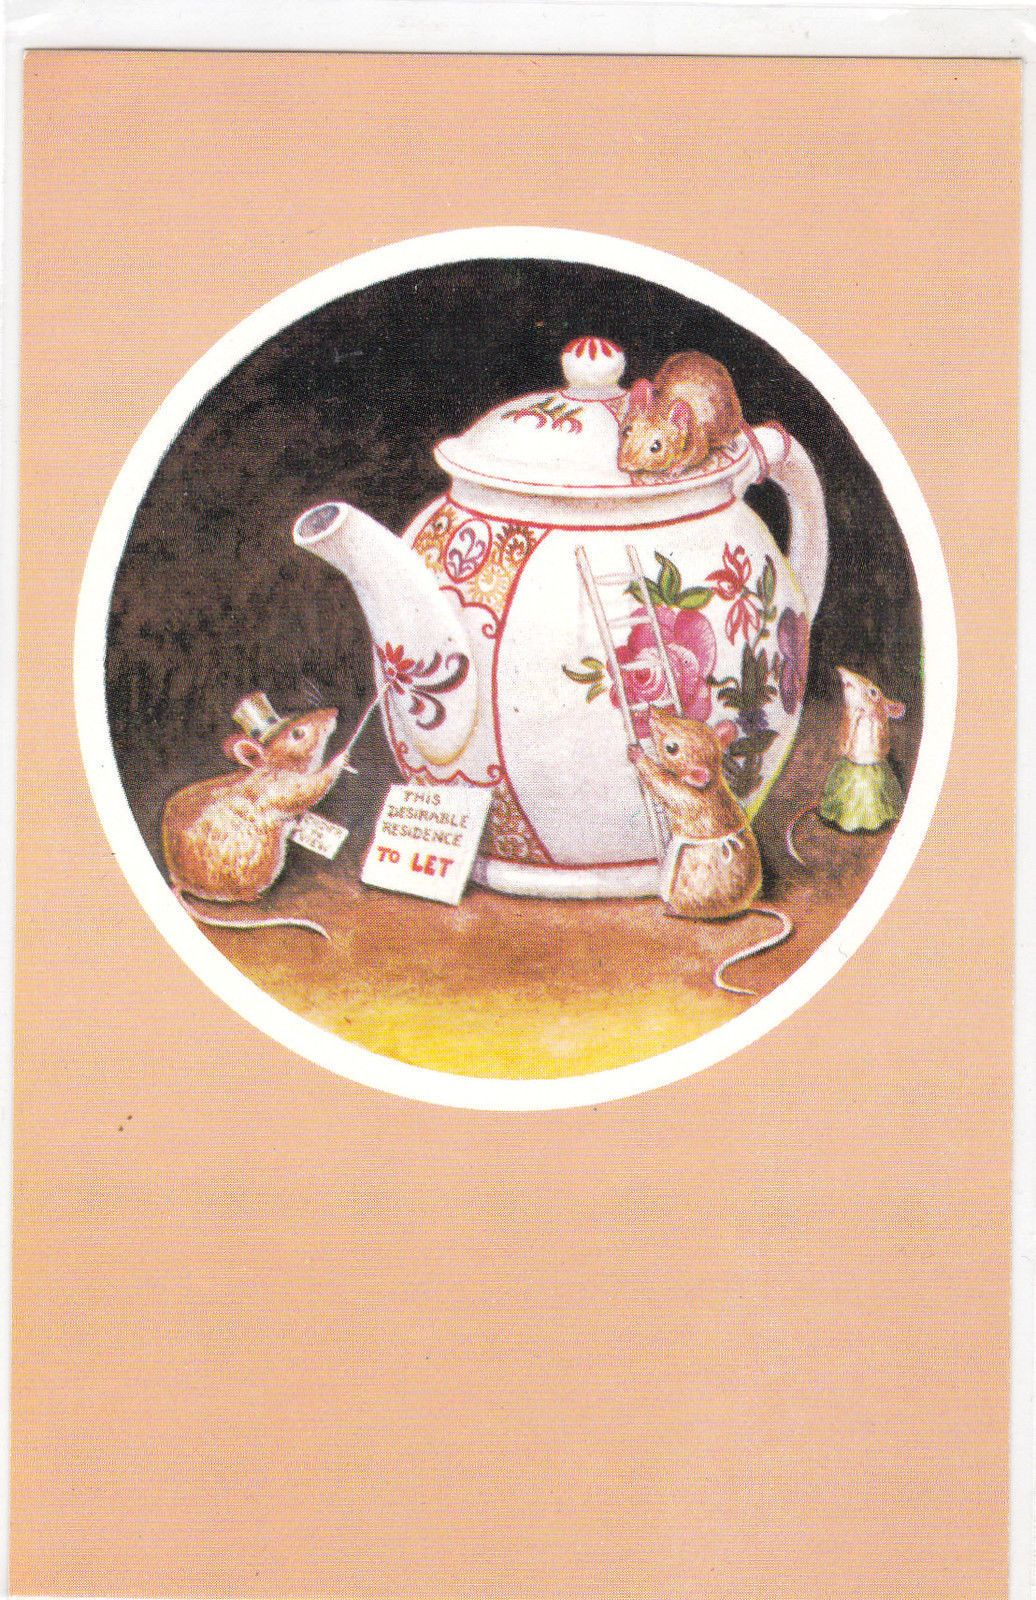 TEAPOT TO LET by Racey Helps mice Medici Society postcard   eBay